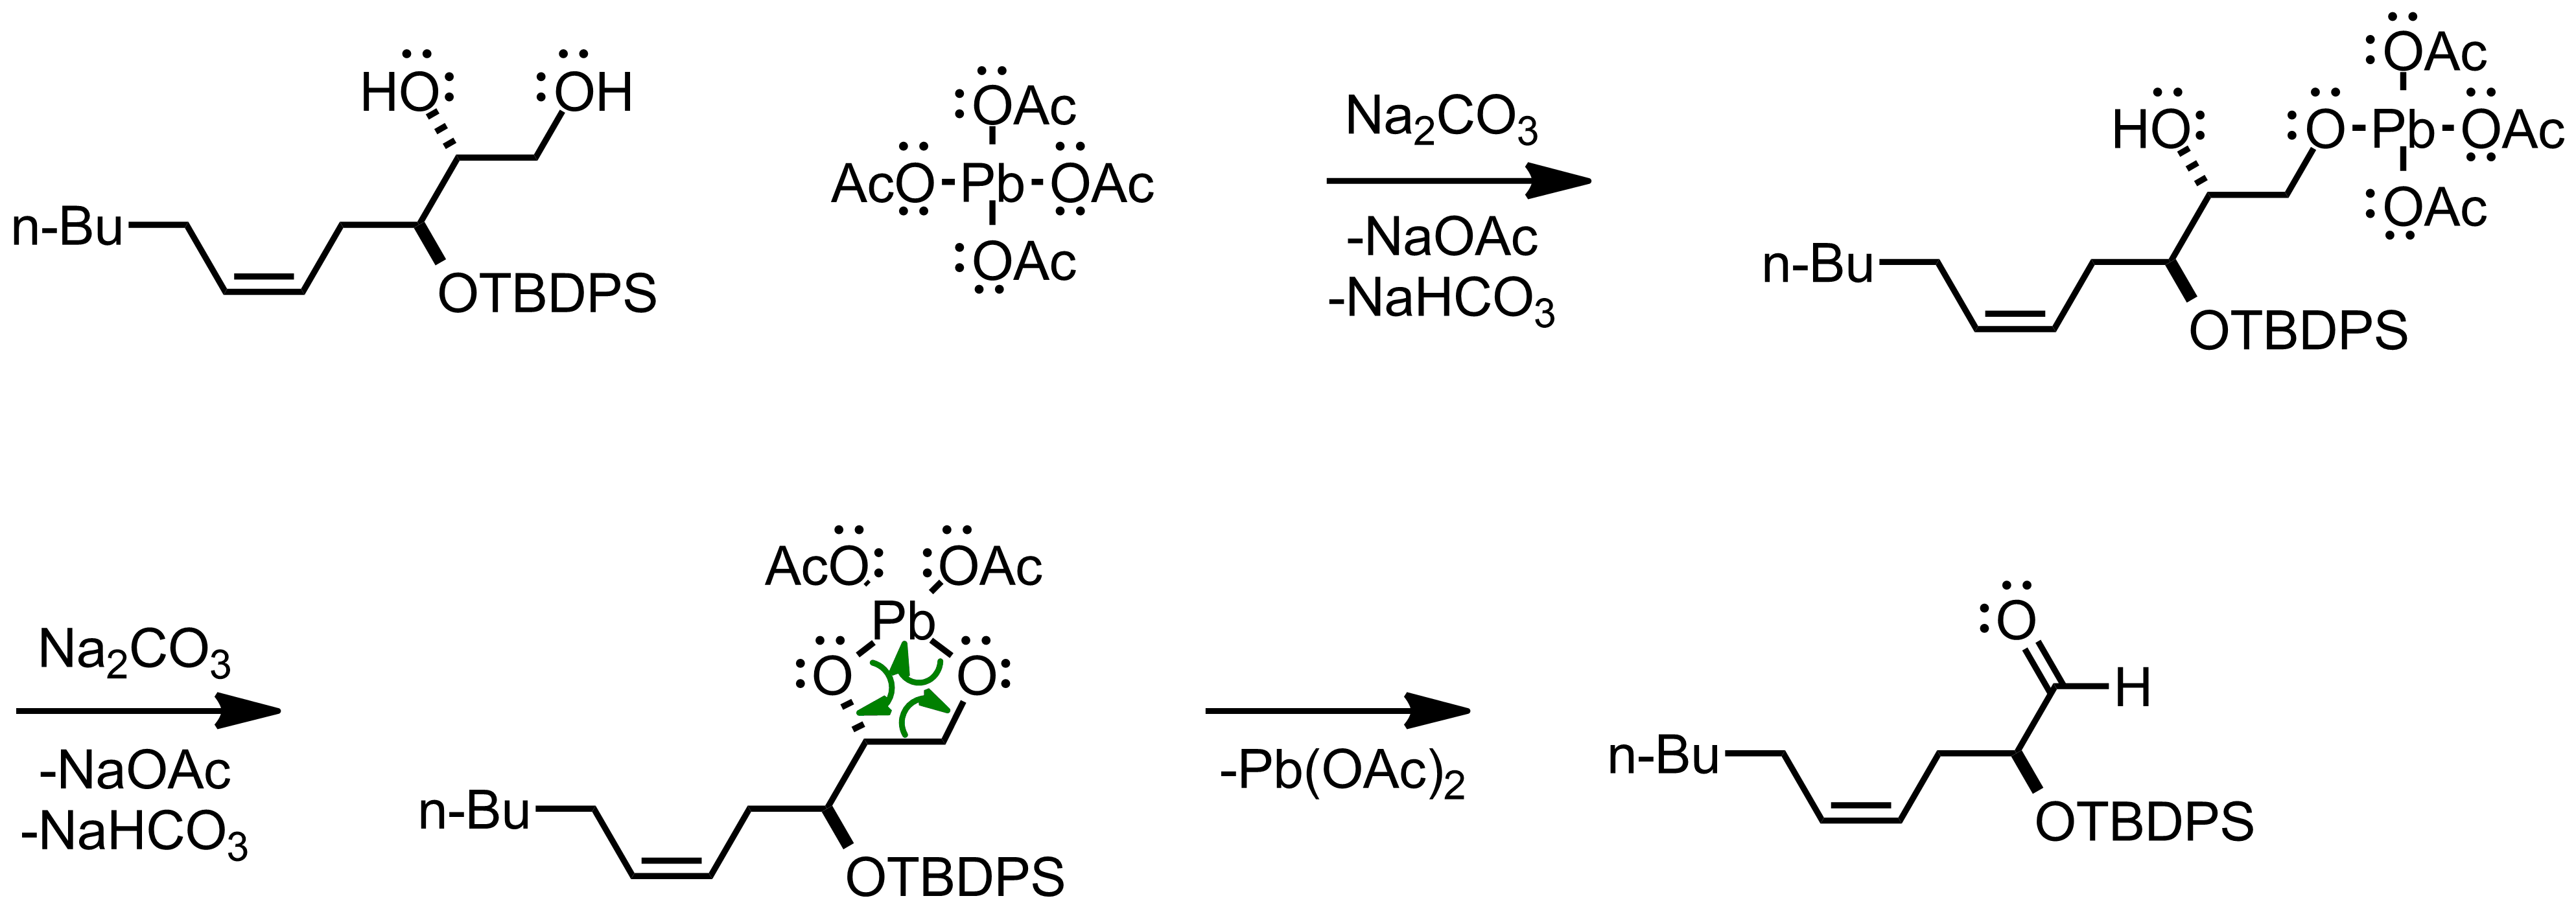 Mechanism of the Criegee Reaction